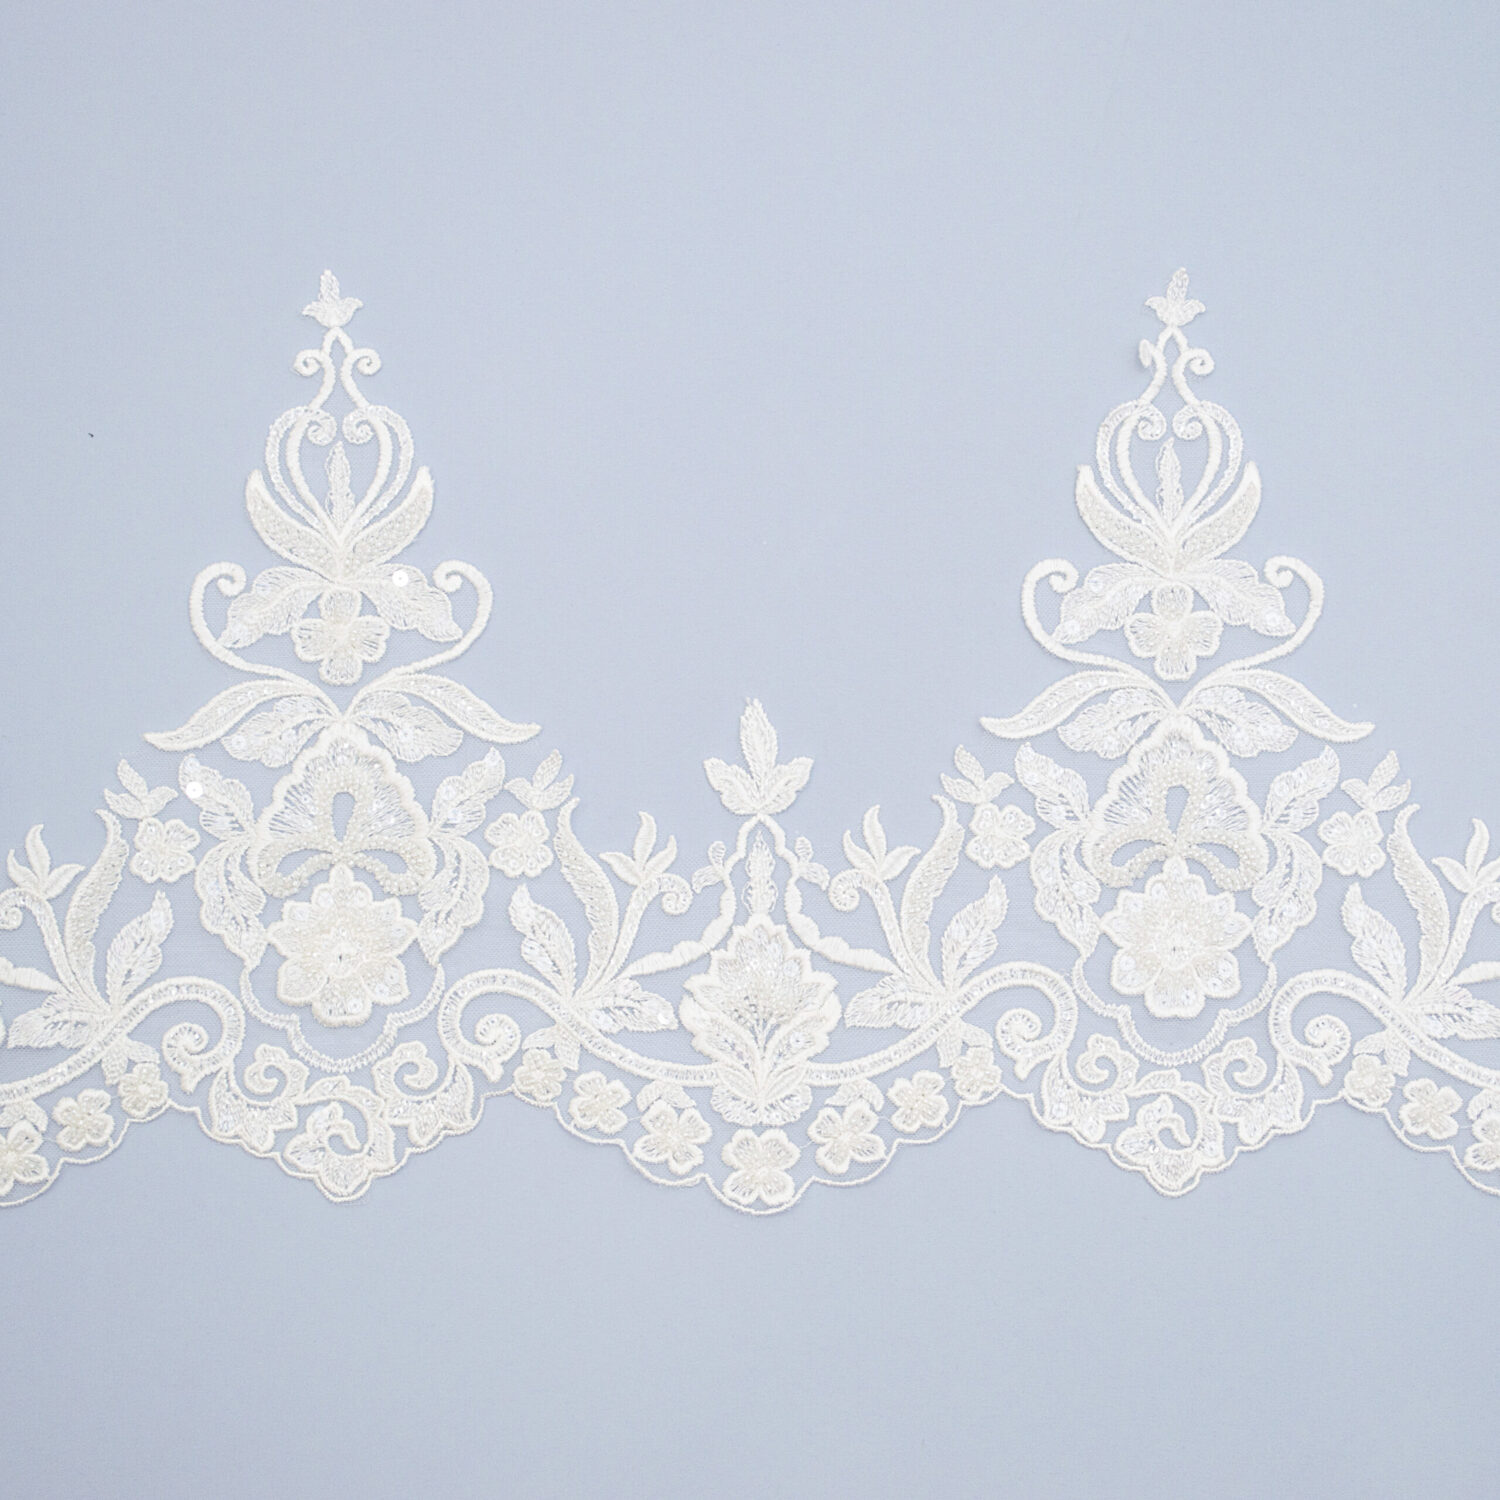 Embroidered lace trim AM13962QF2-N44